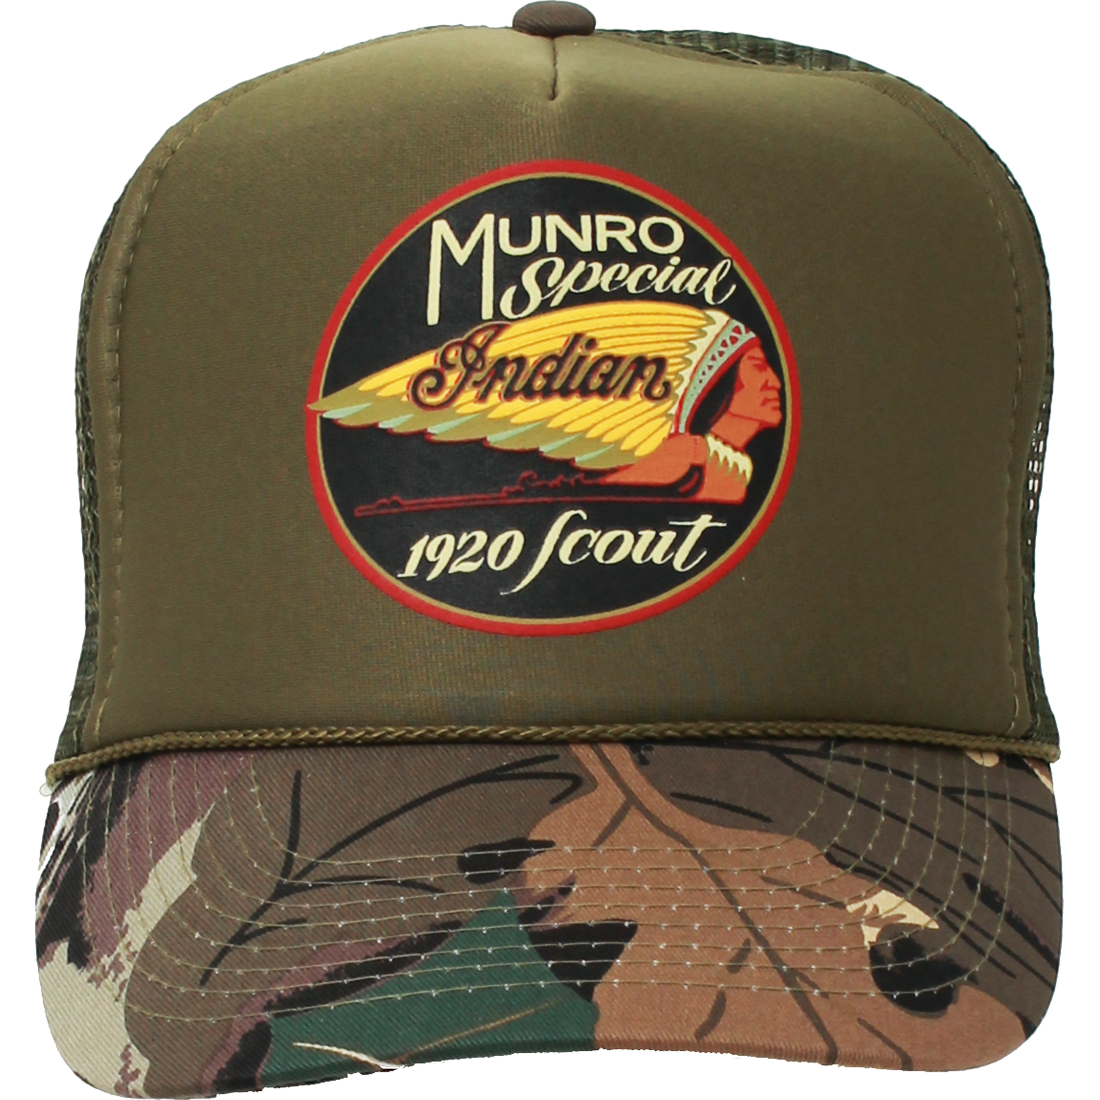 14301578de9 Munro Indian Special Motocycle Snapback Hat on Military Camo Curve Bill.